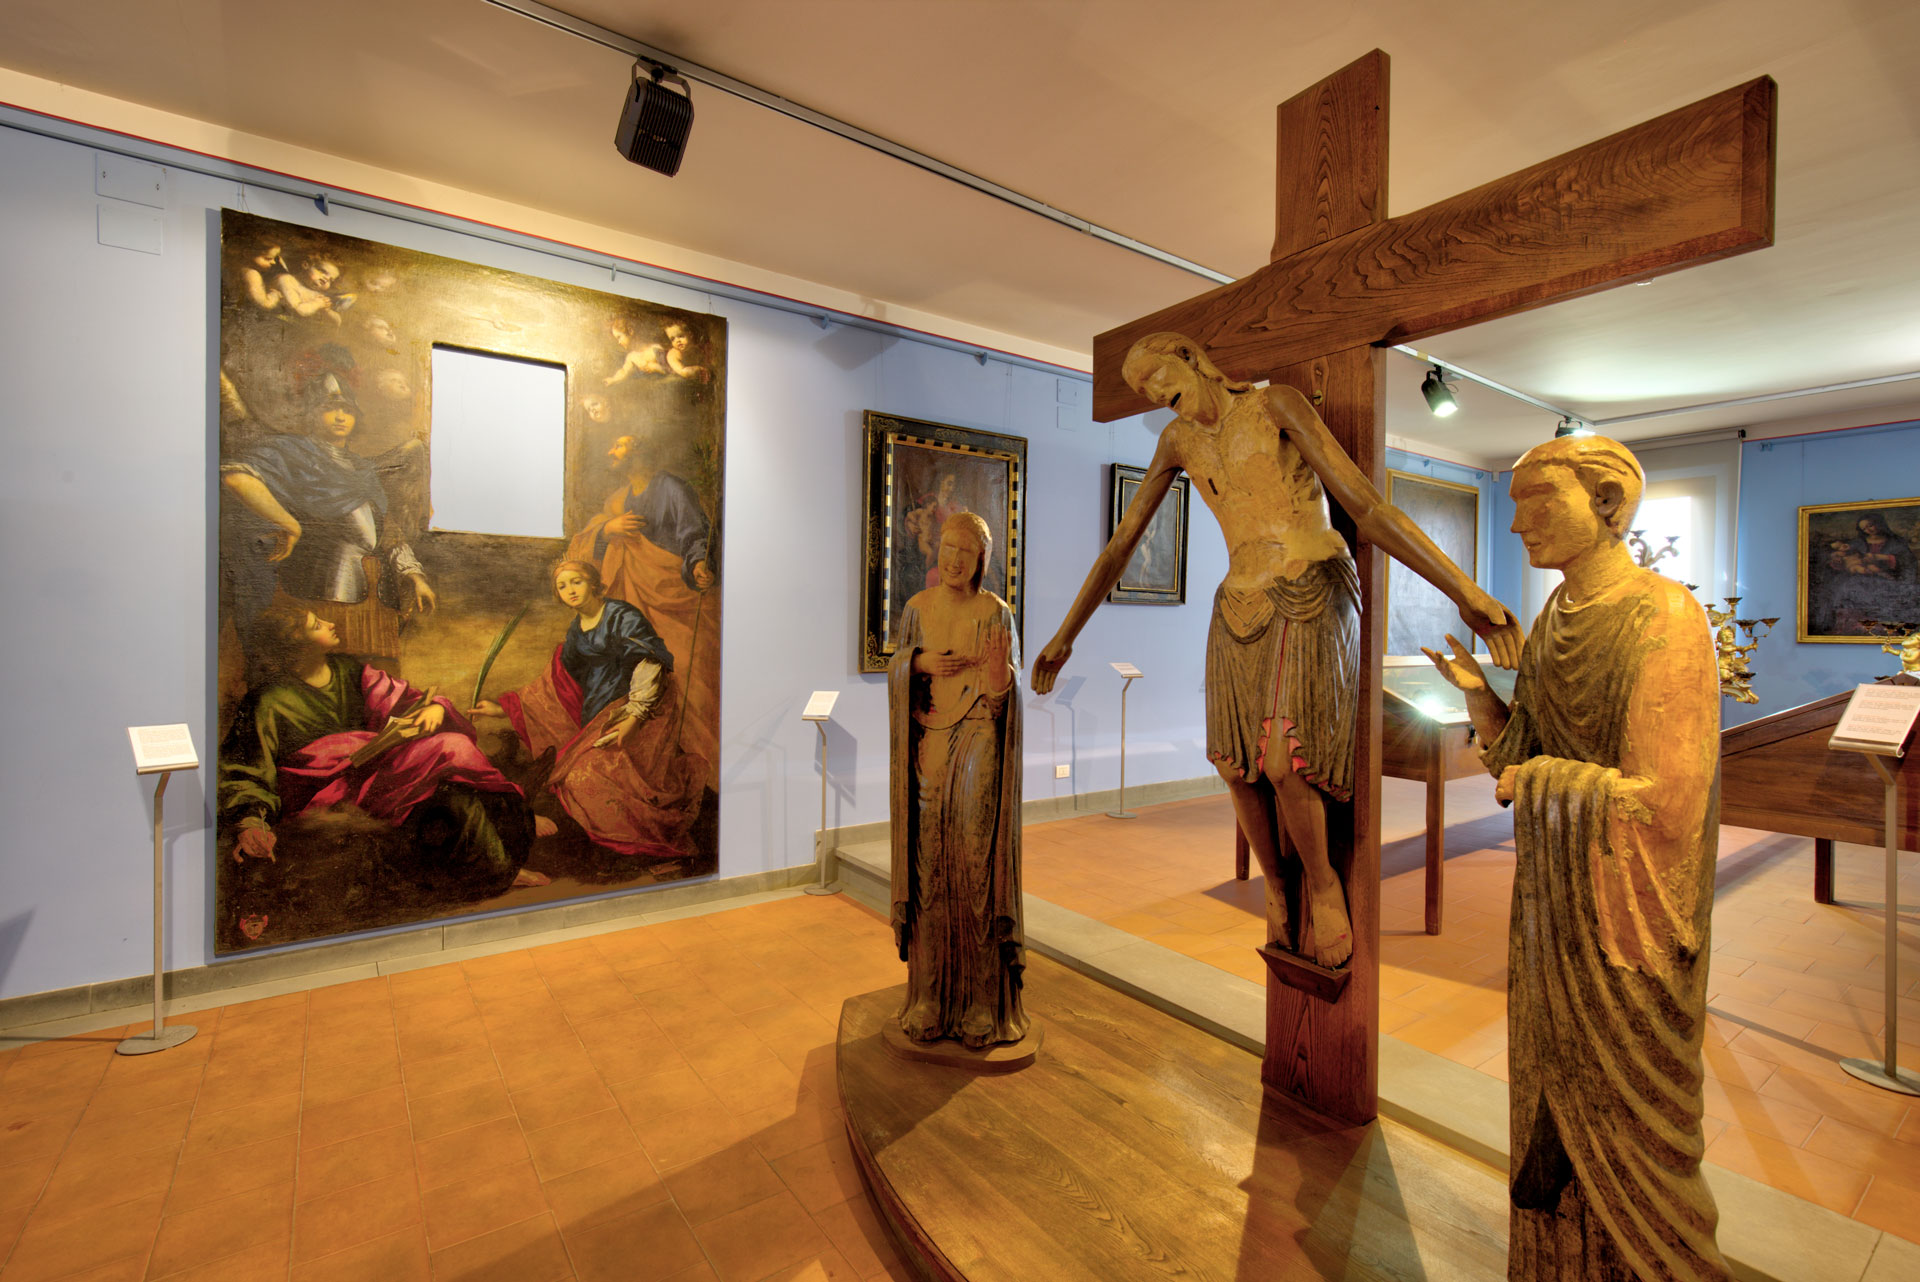 Museum of the Arciconfraternita della Misericordia